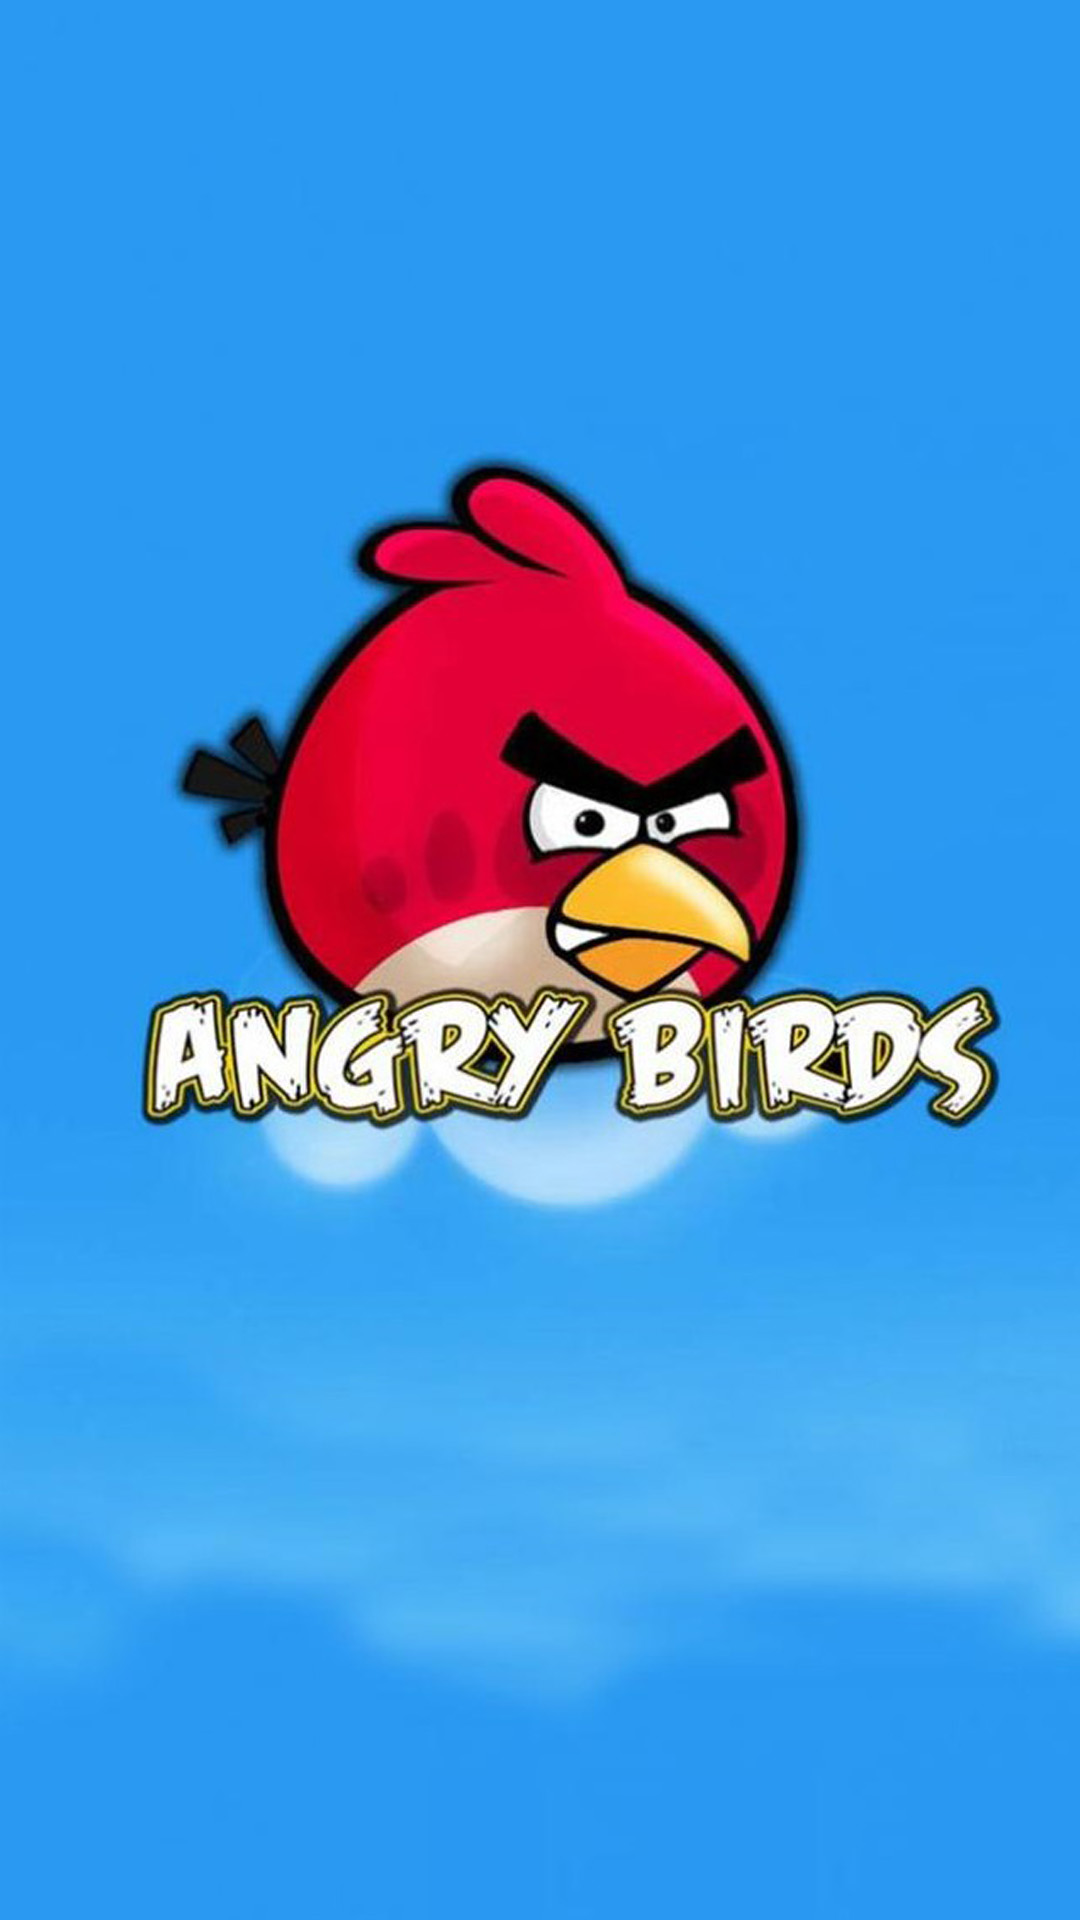 angry birds intro android wallpaper - android hd wallpapers